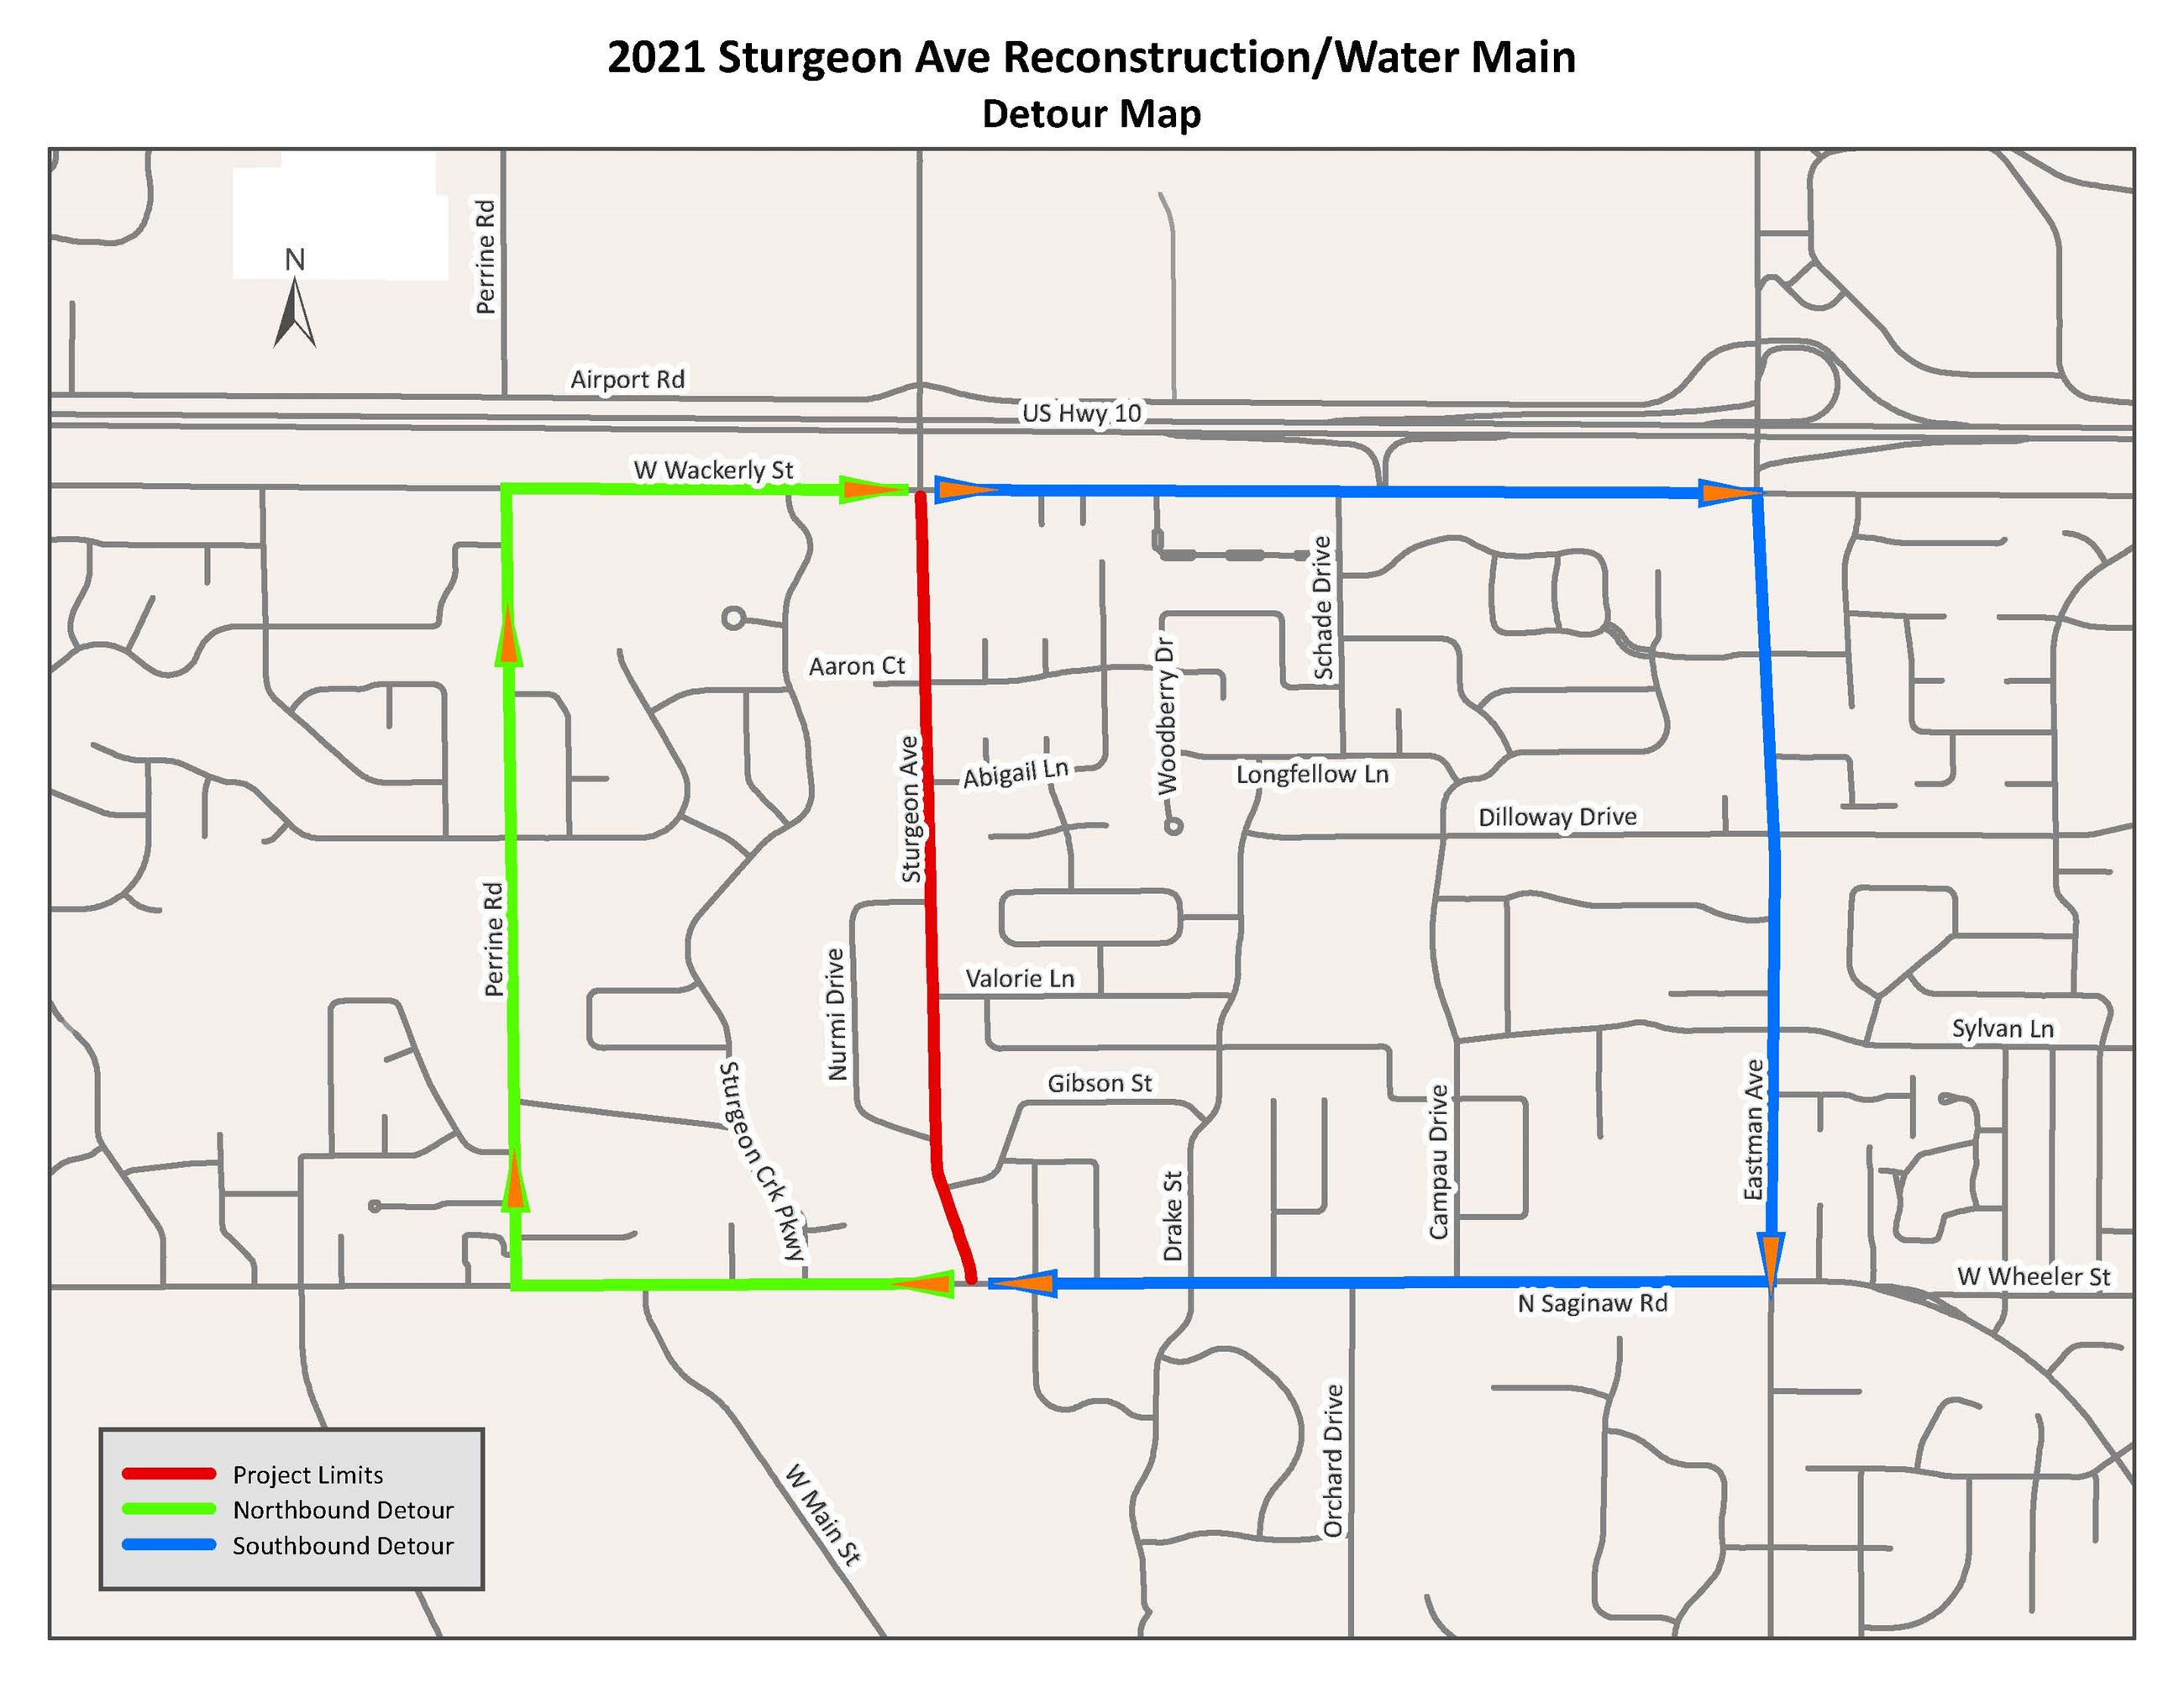 2021 Sturgeon Ave Detour